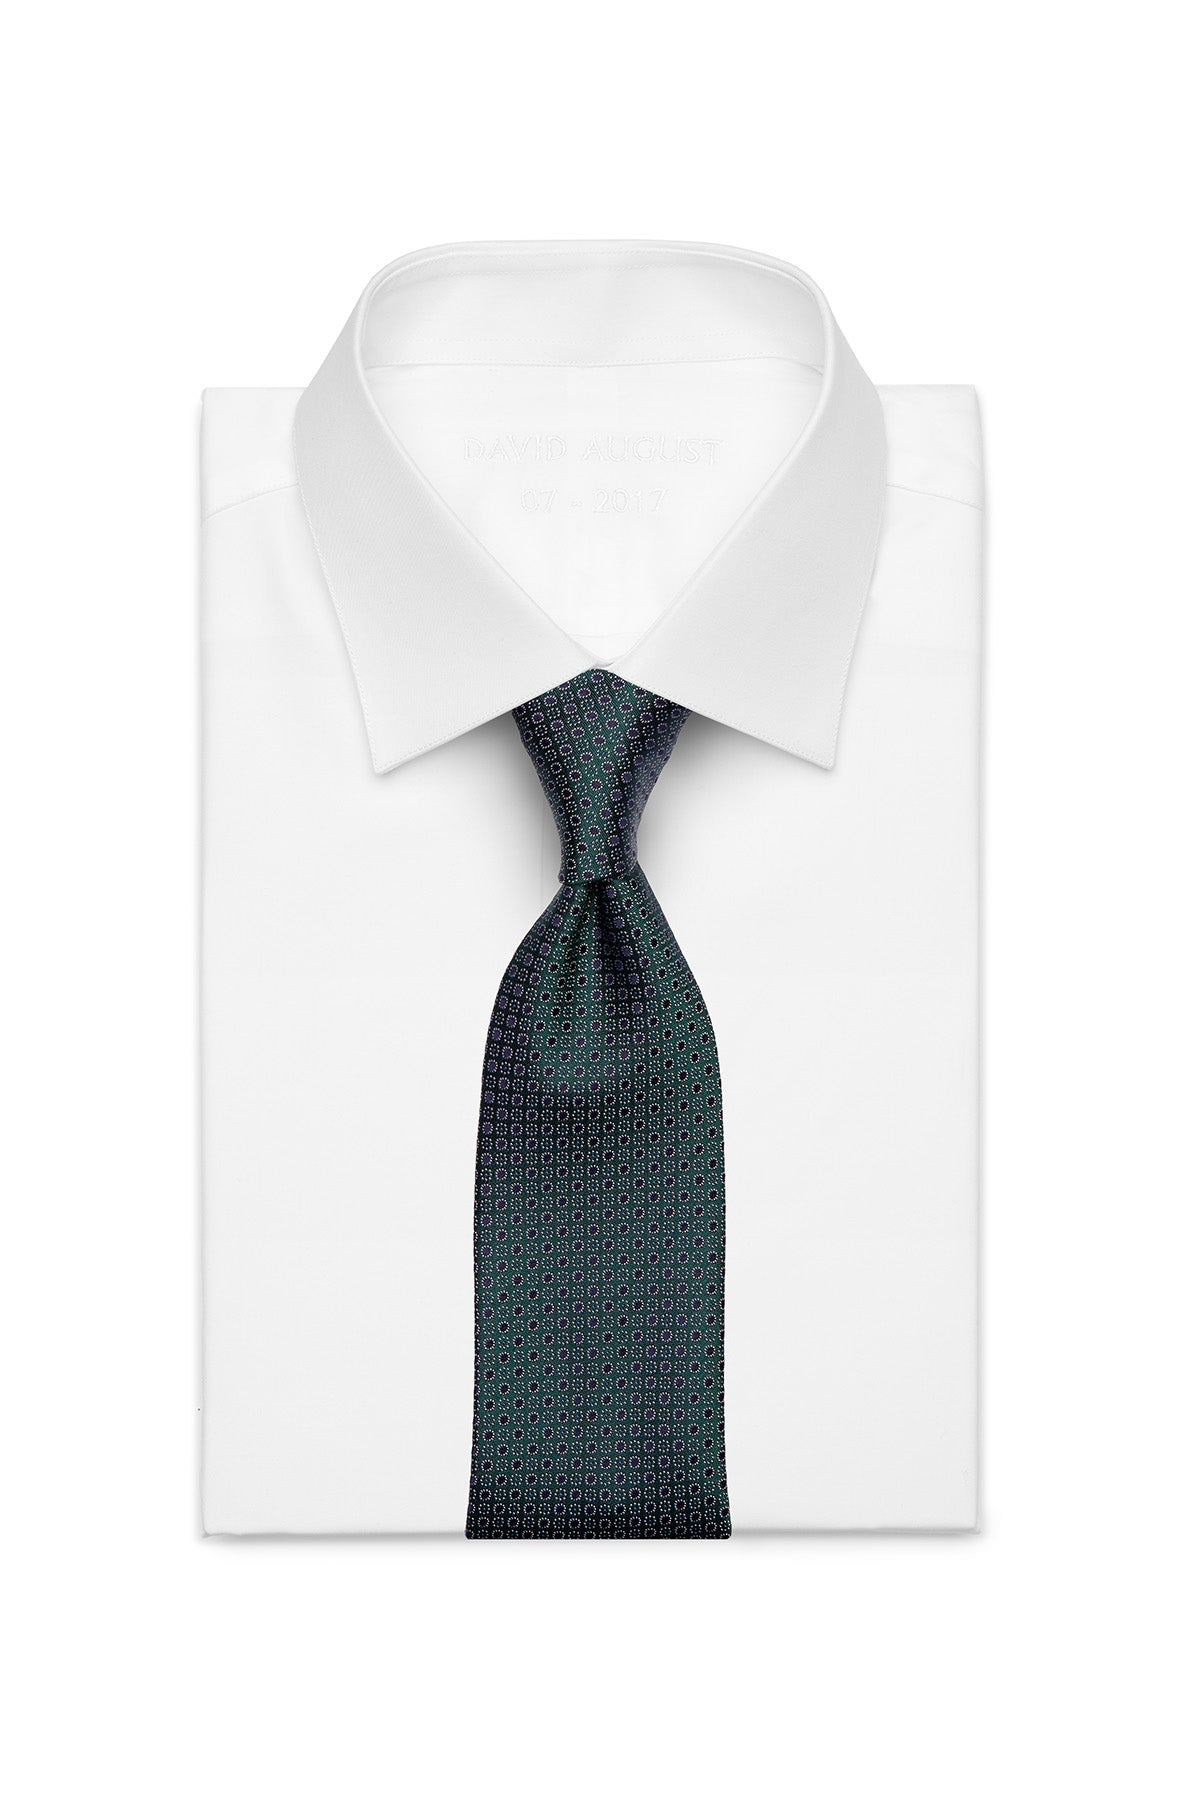 Miracles For Kids Exclusive Silk Jacquard Tie - Green